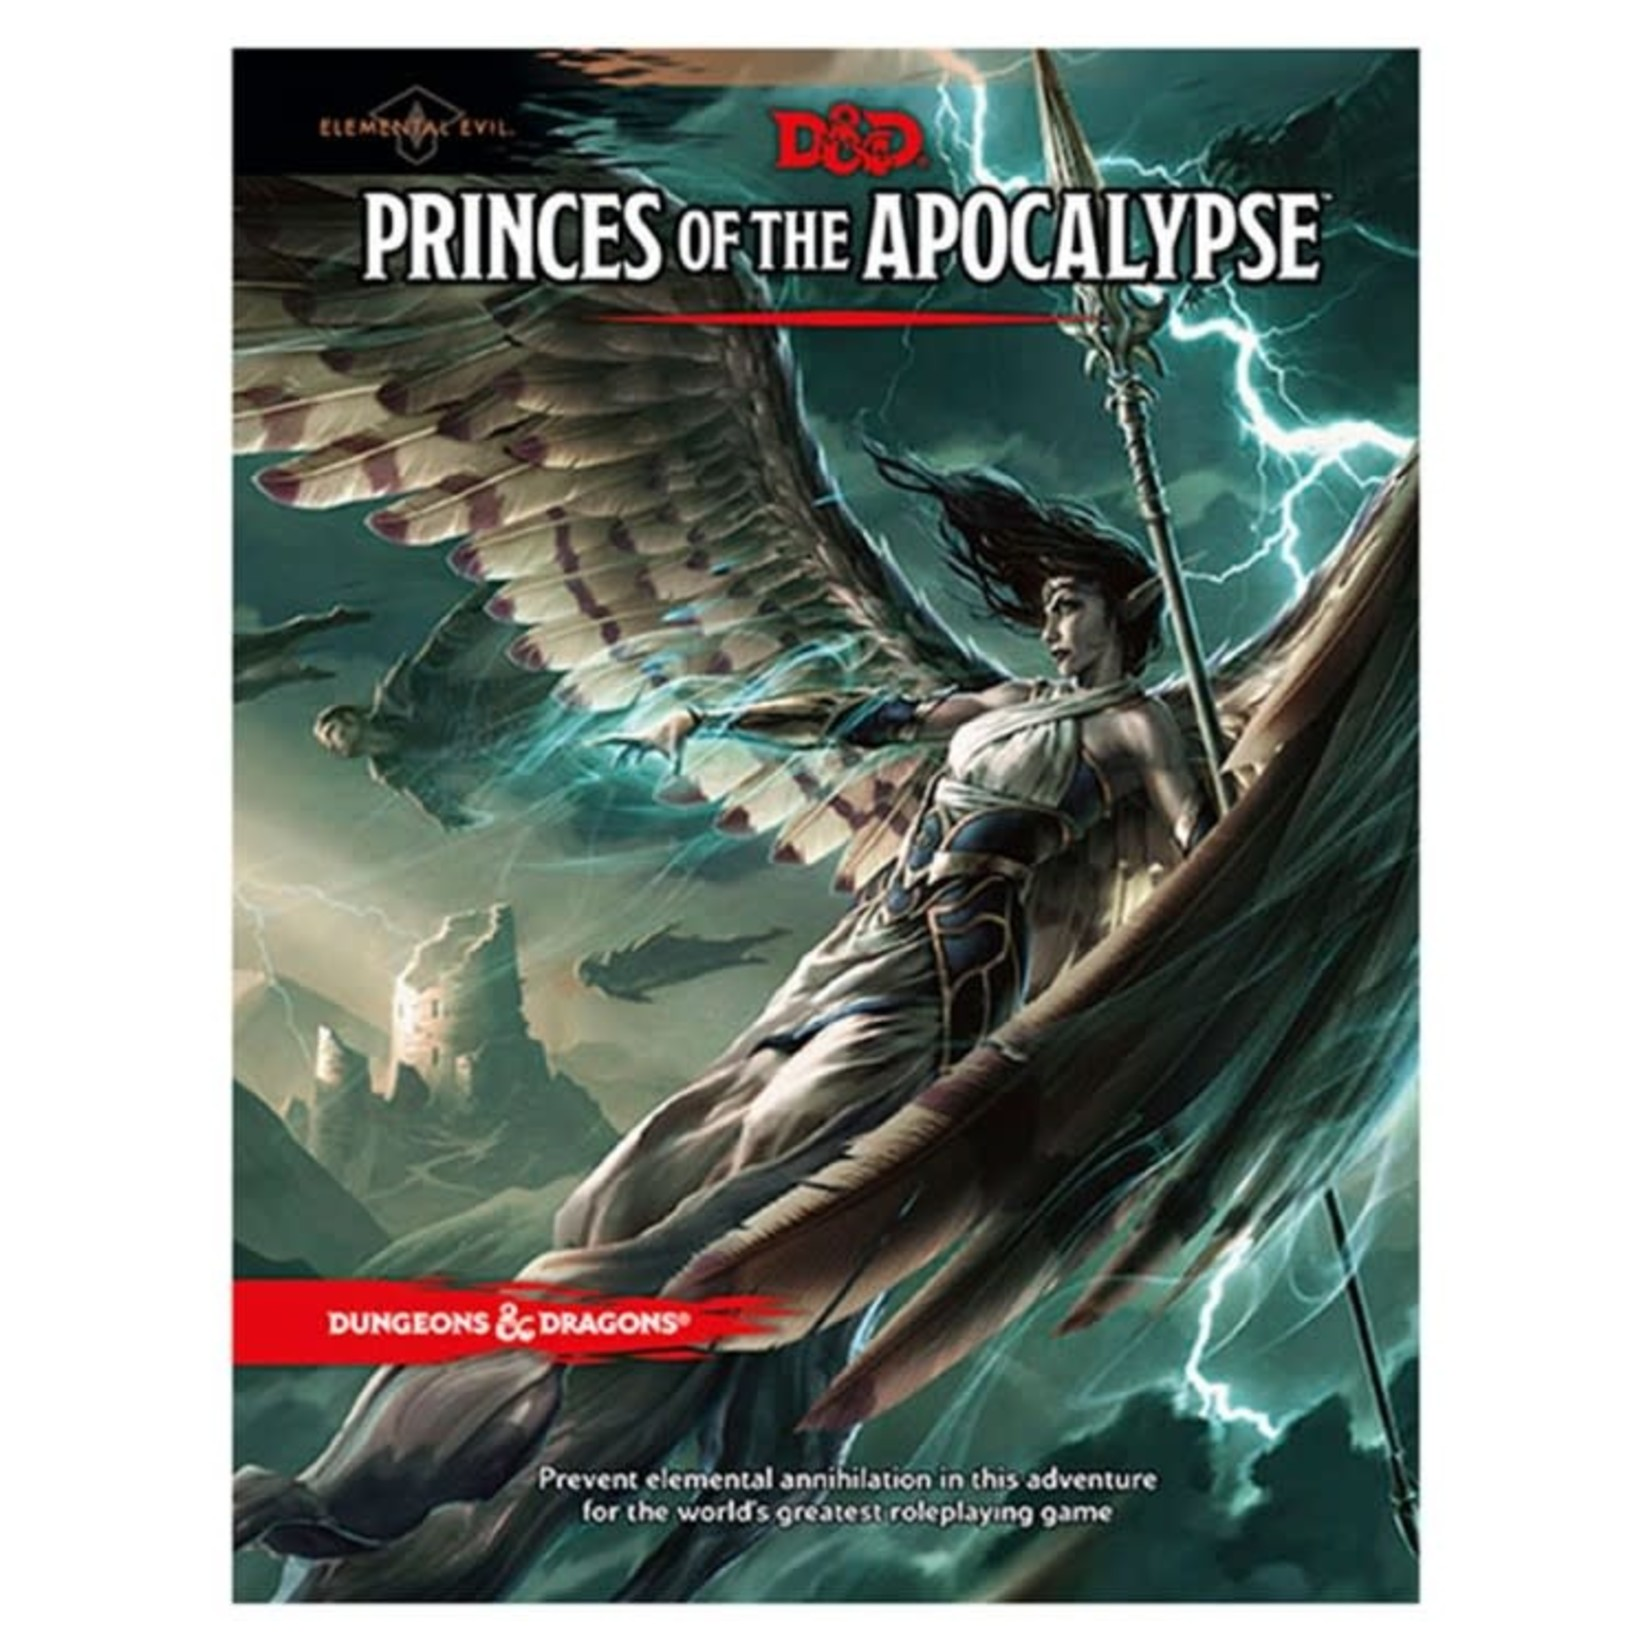 Dungeons & Dragons Dungeons & Dragons 5th Edition Princes of the Apocalypse